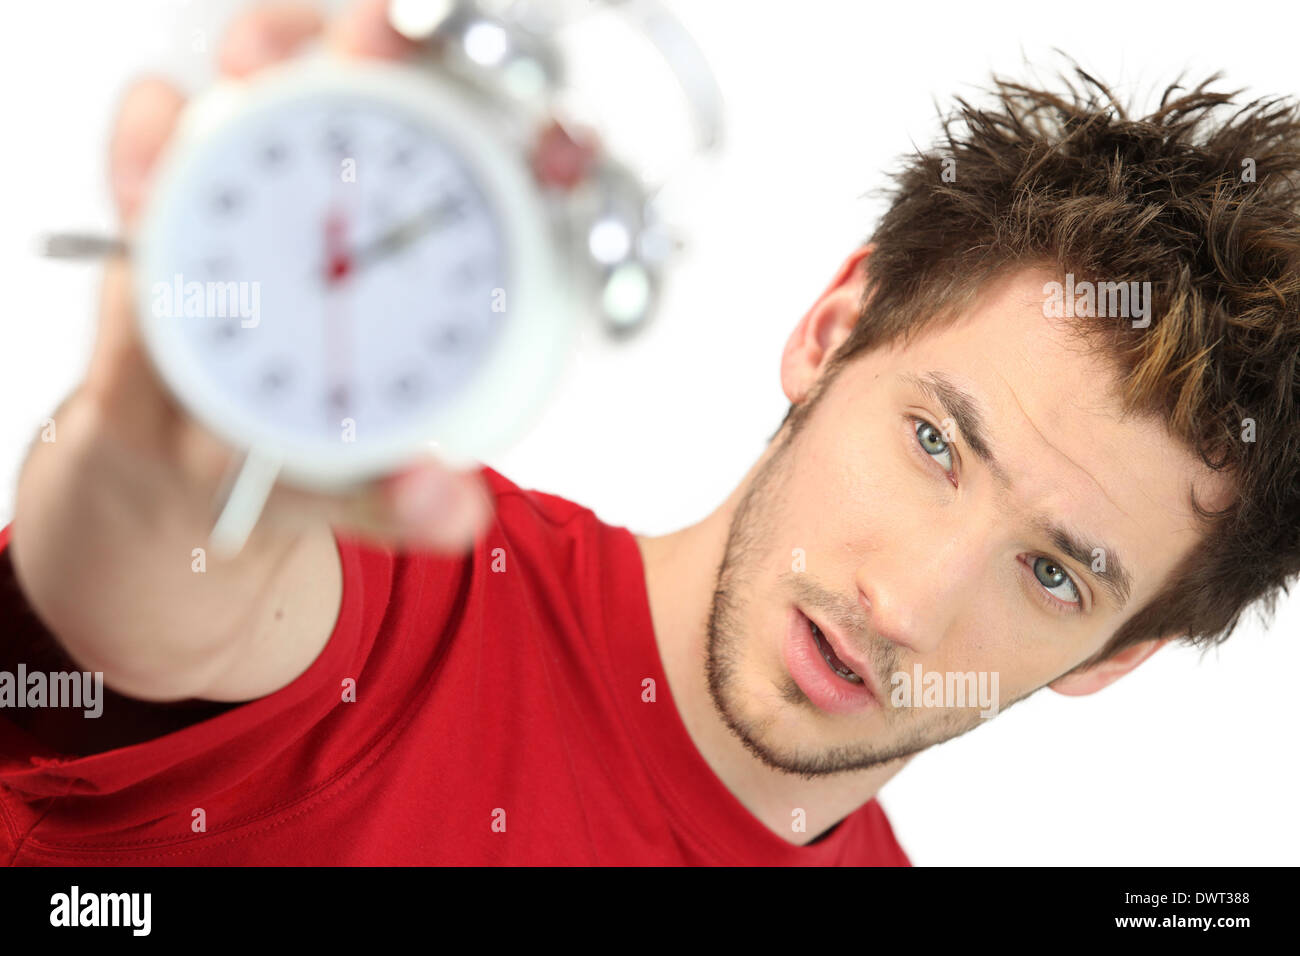 A frazzled man holding an alarm clock Stock Photo